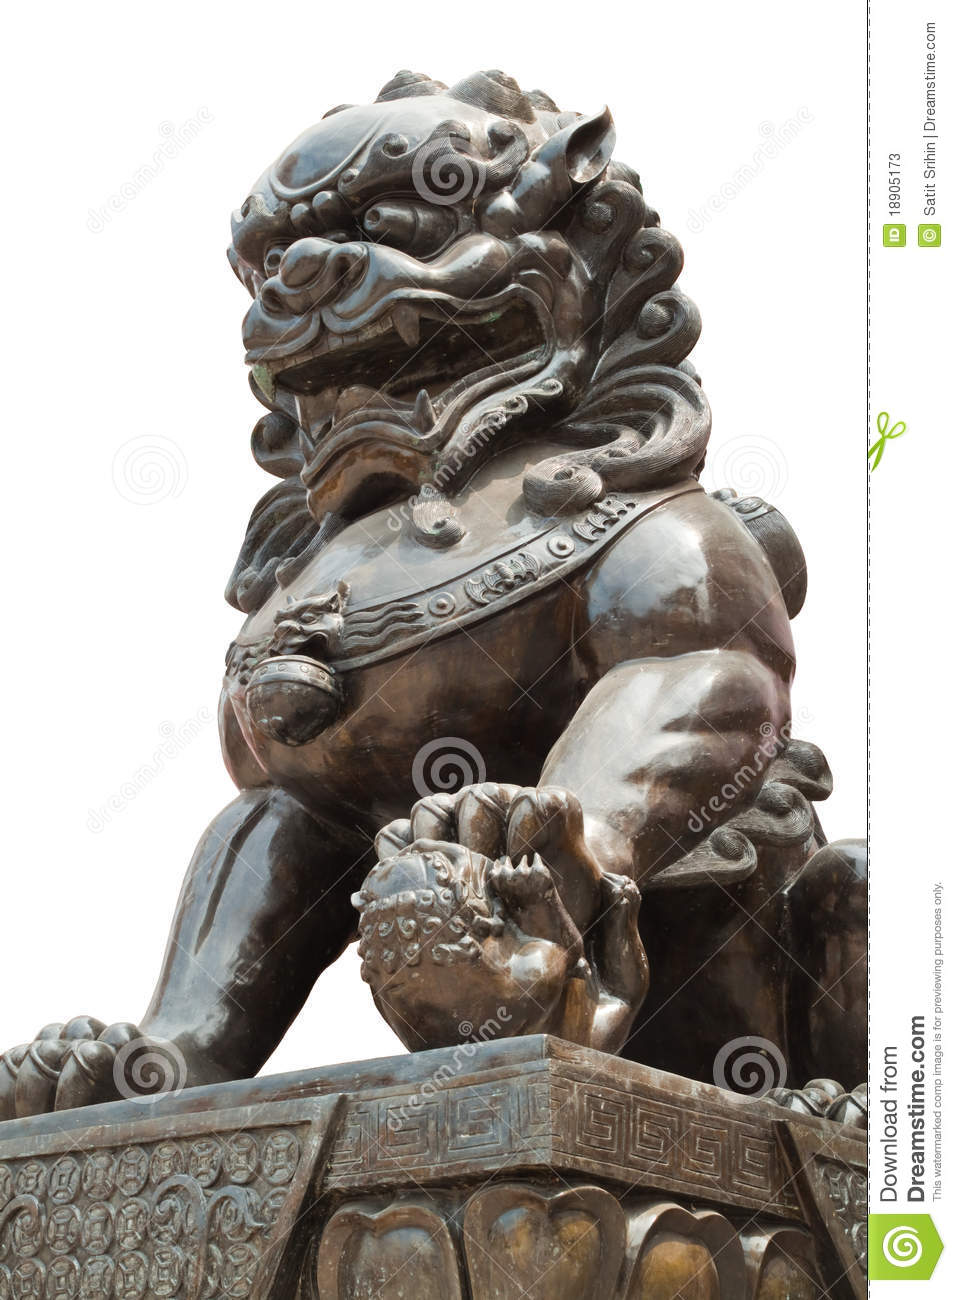 Chinese Dragon Statue Sculpture Stock Photos - Image: 18905173